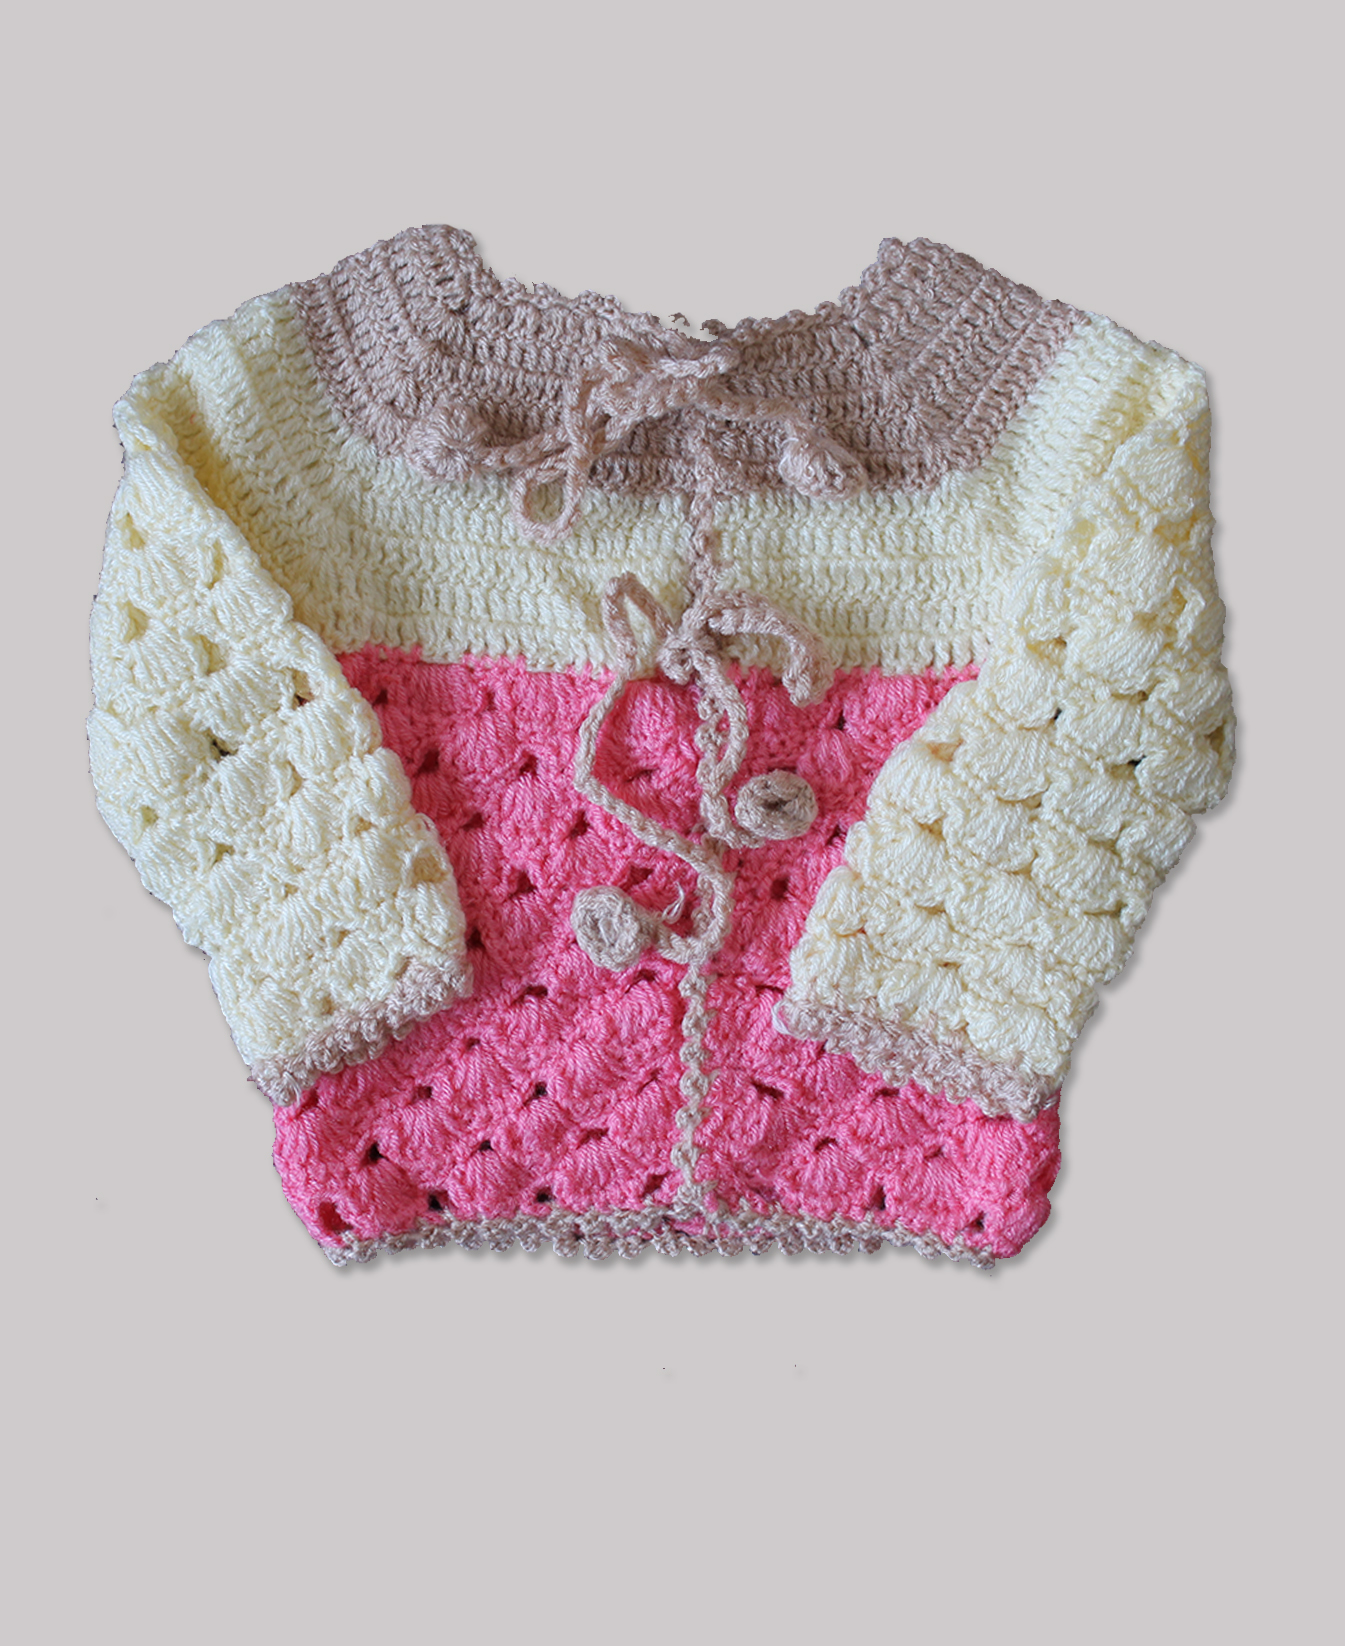 Woonie Handmade Pink and Cream Sweater for Kids